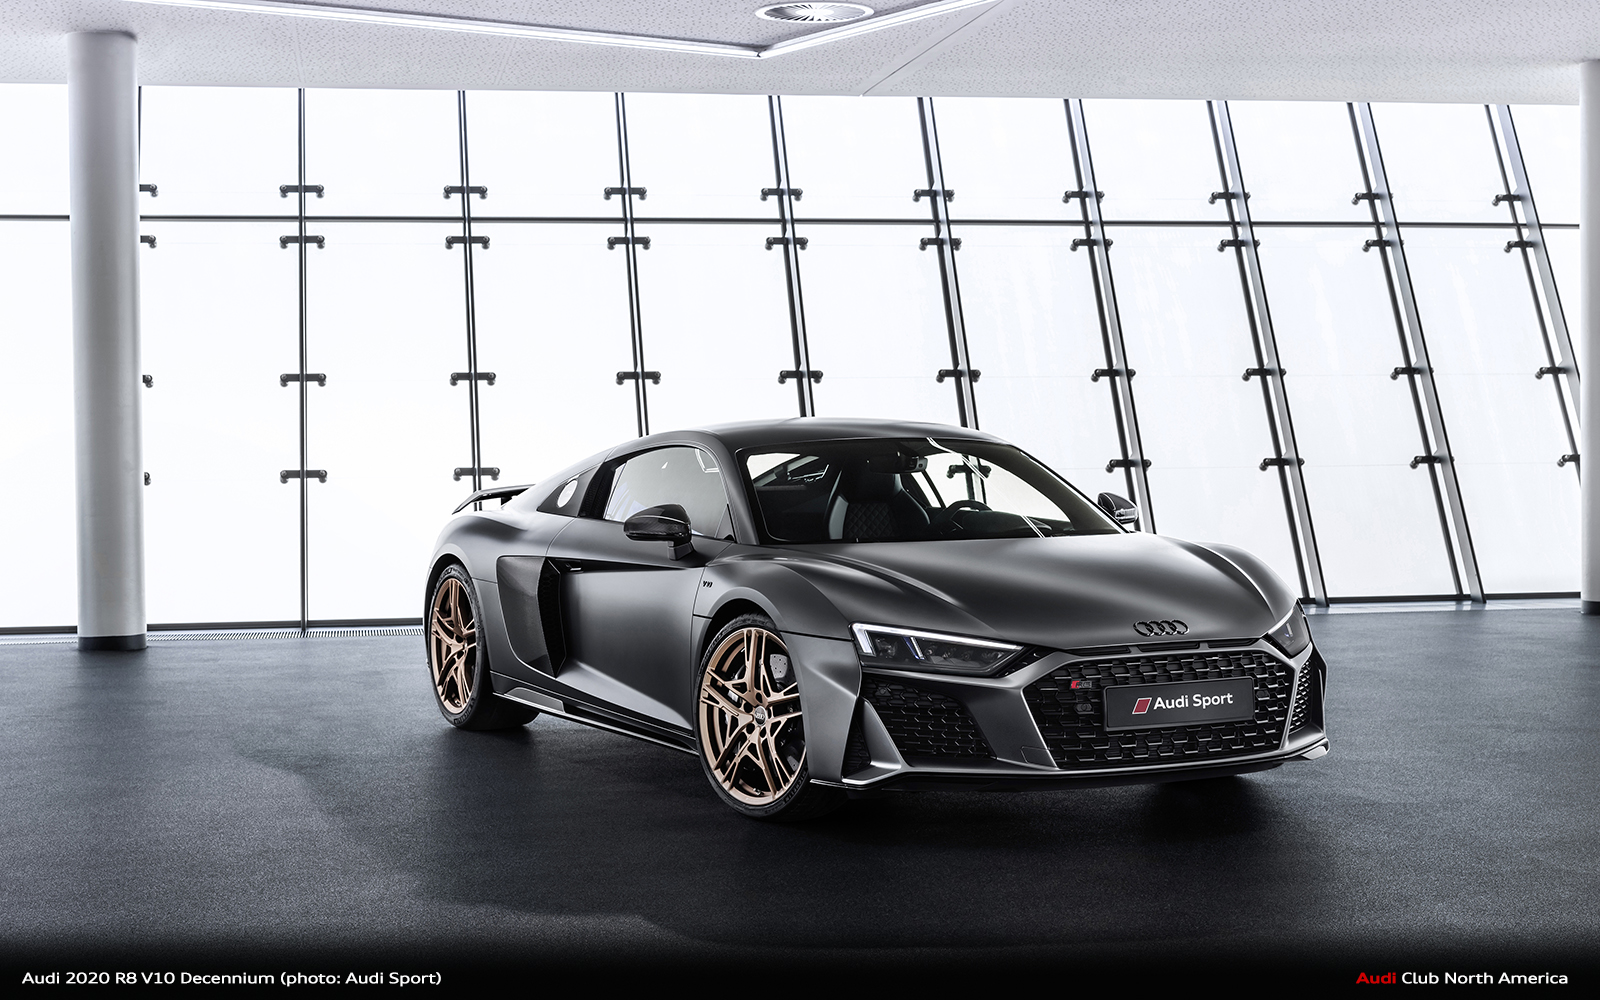 Updated 2020 Audi R8 And Limited Edition R8 V10 Decennium Bring